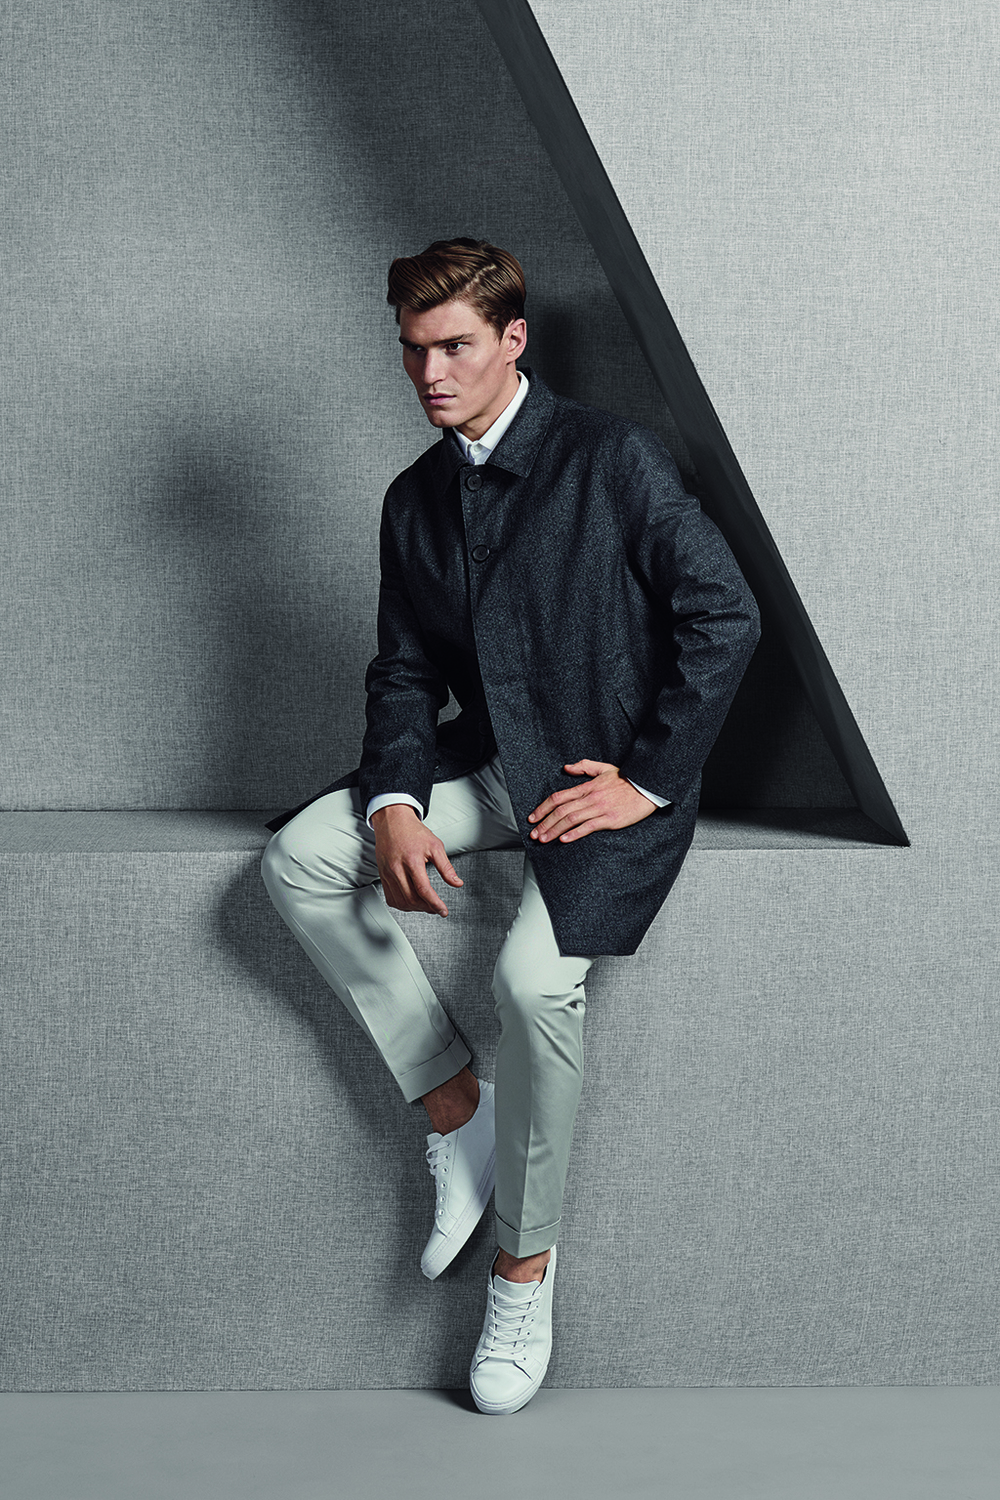 Oliver Cheshire | Marks & Spencer Autograph | Sam Squire UK Male fashion blogger